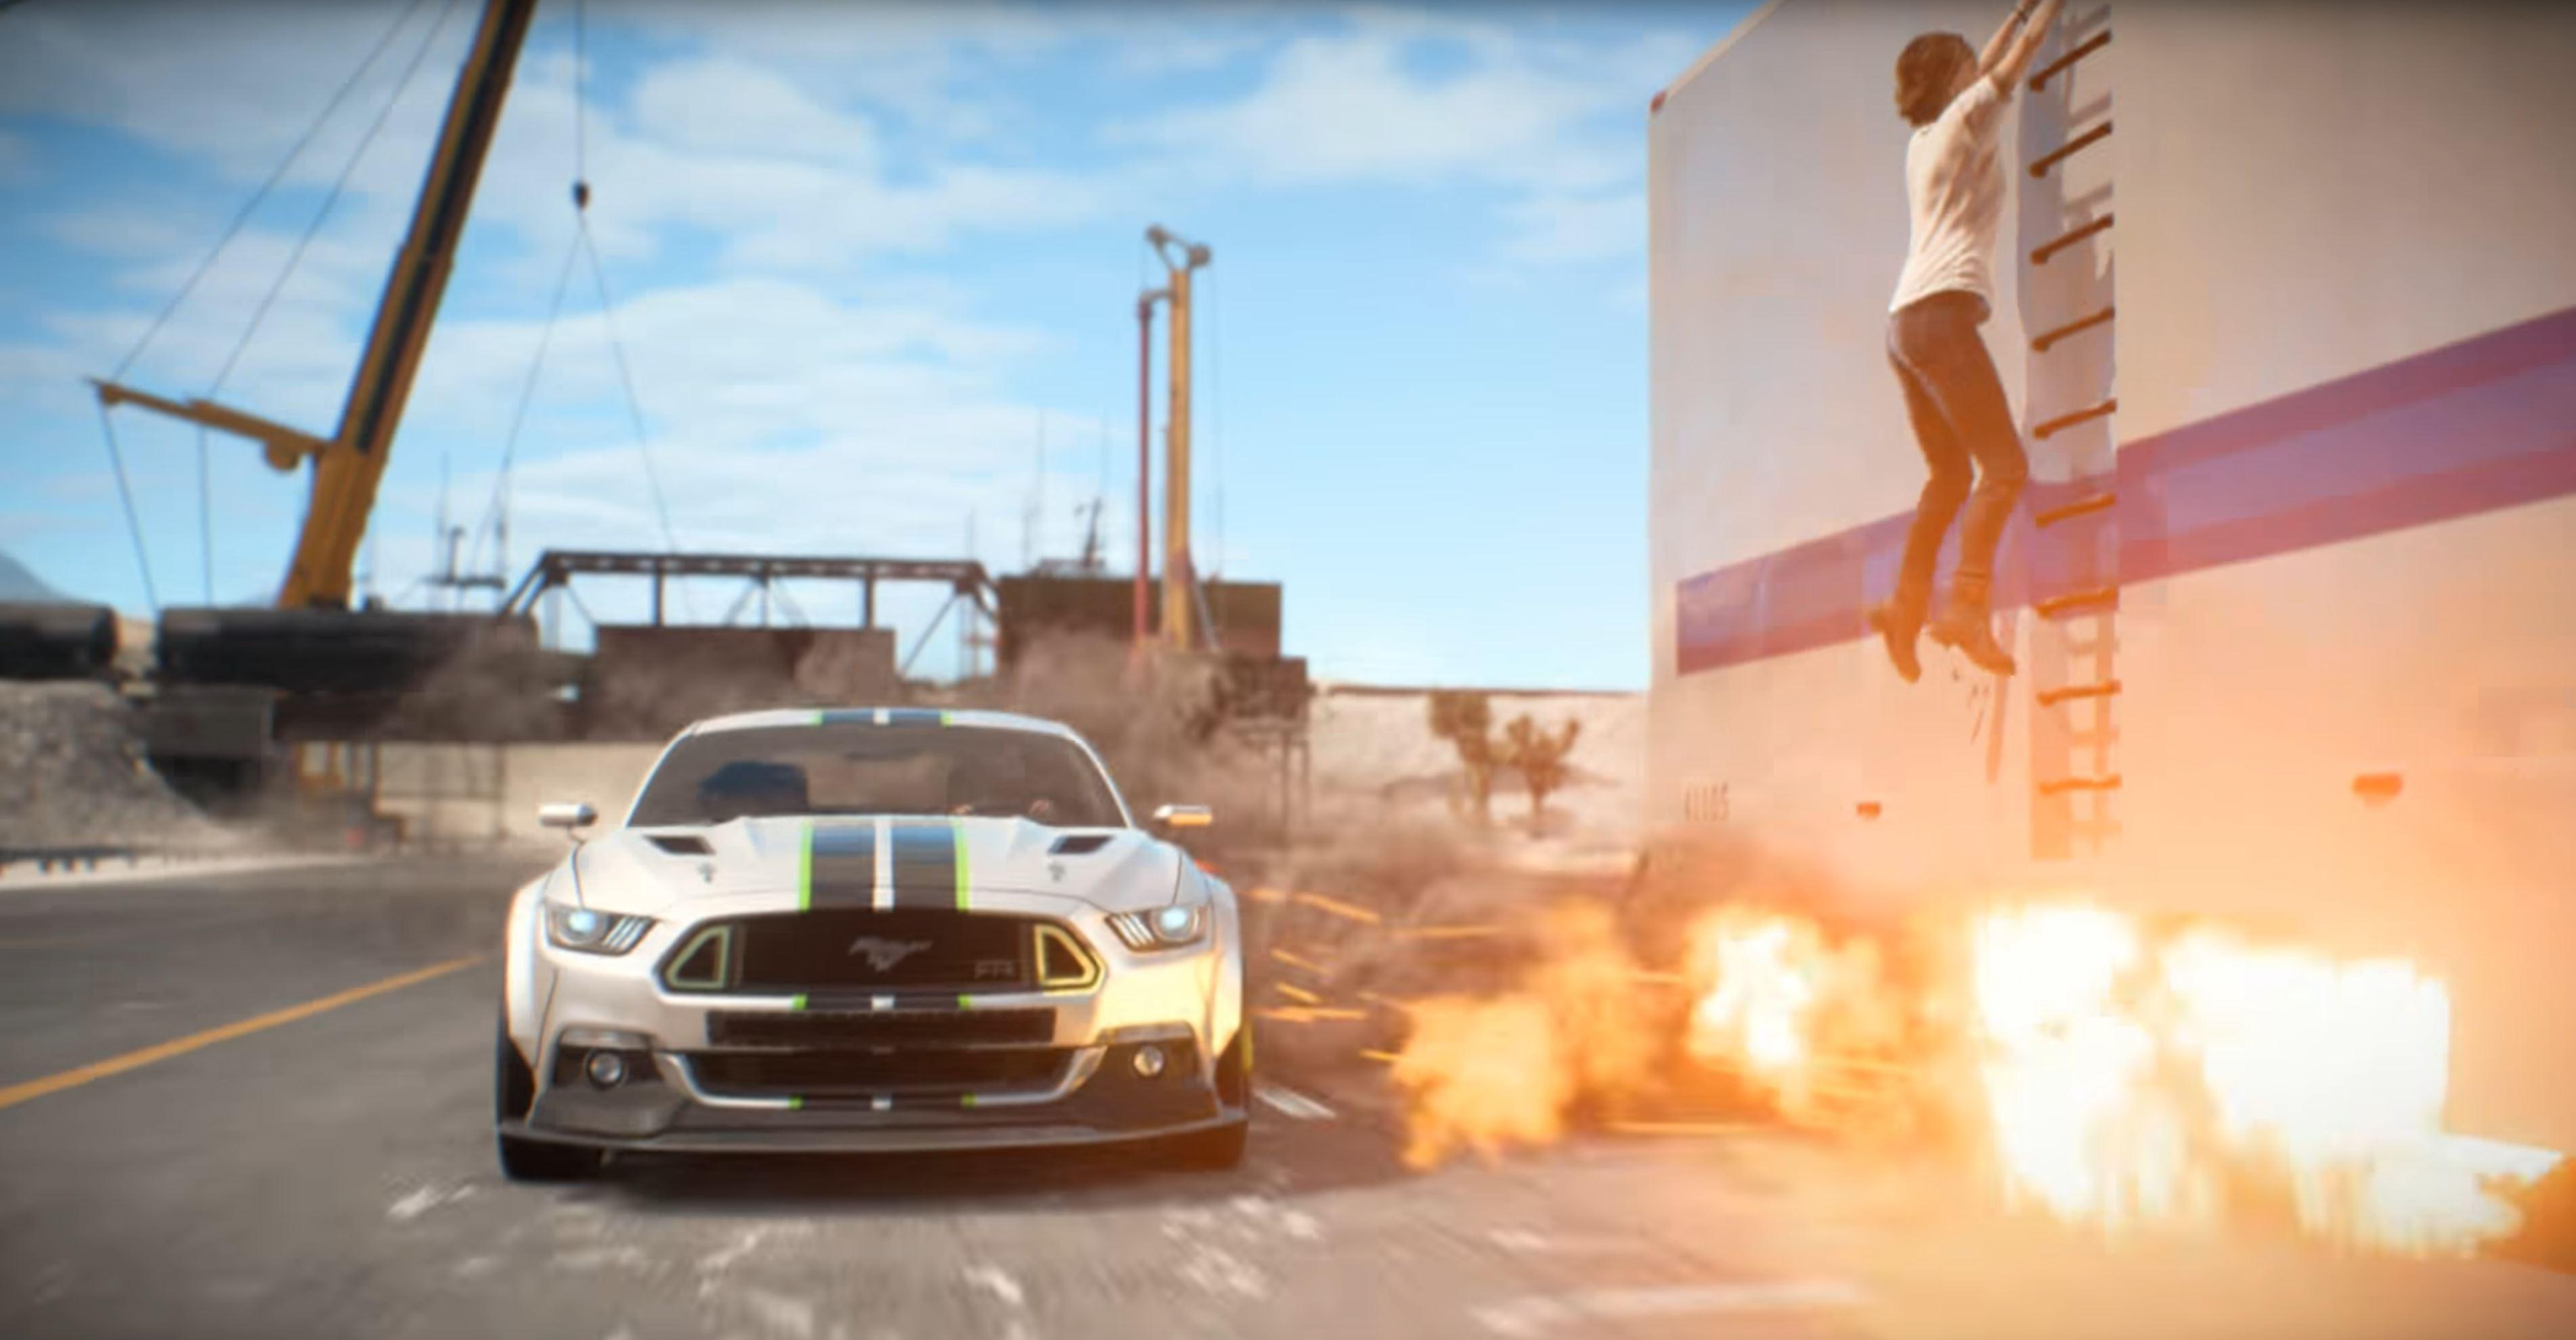 3d Colourful Wallpaper Need For Speed Payback Review 4 Reasons Why You Re Going